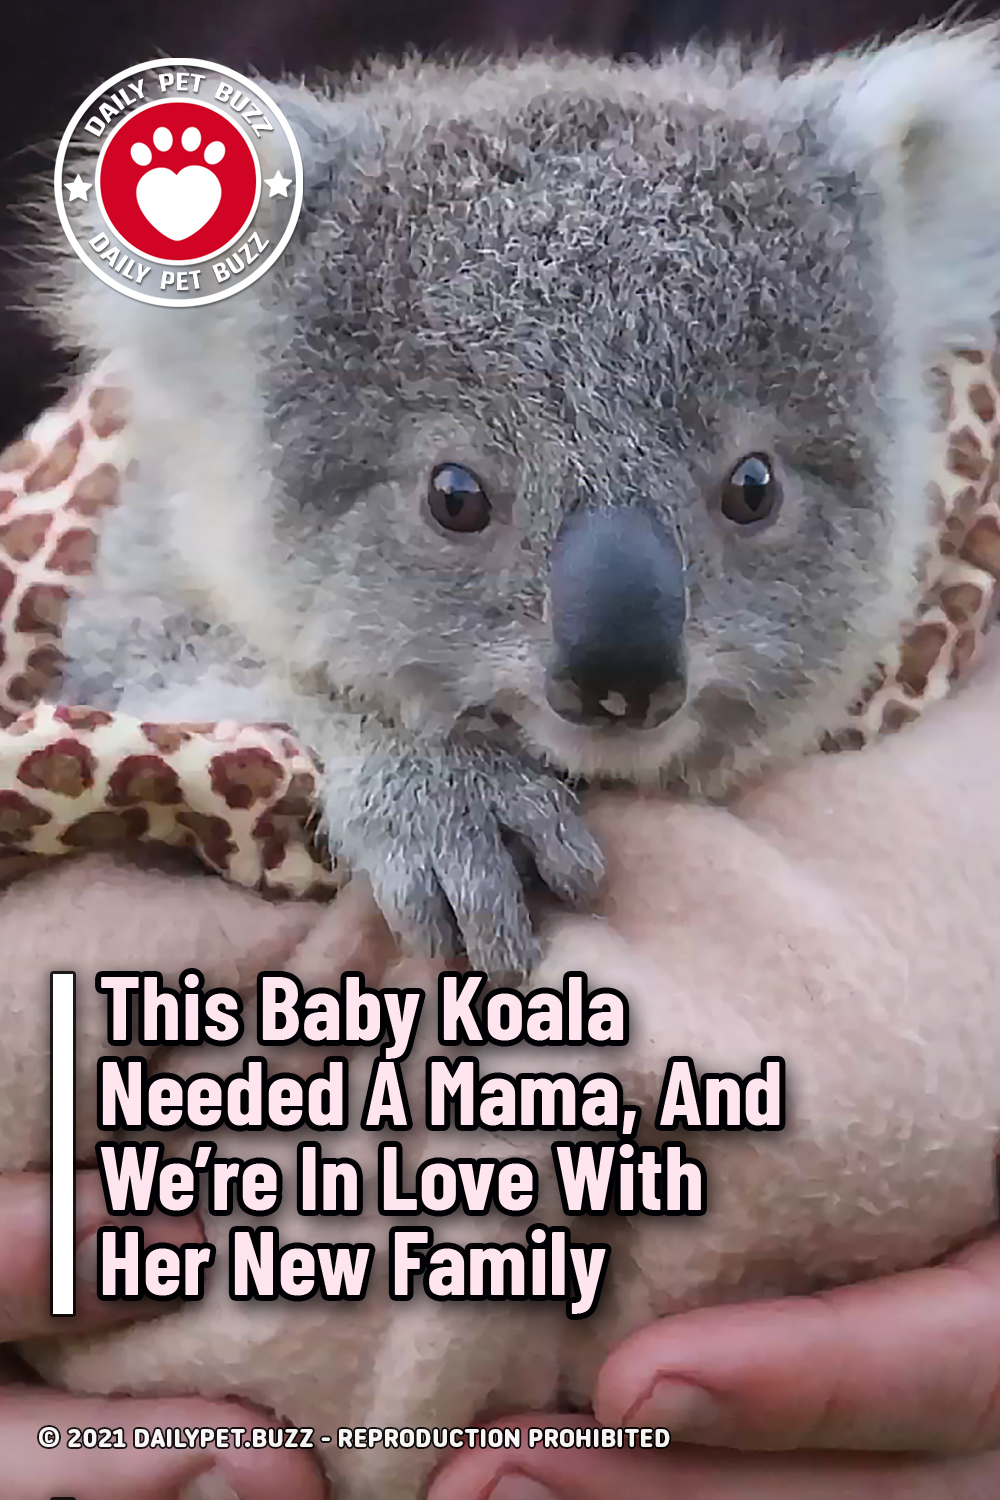 This Baby Koala Needed A Mama, And We're In Love With Her New Family